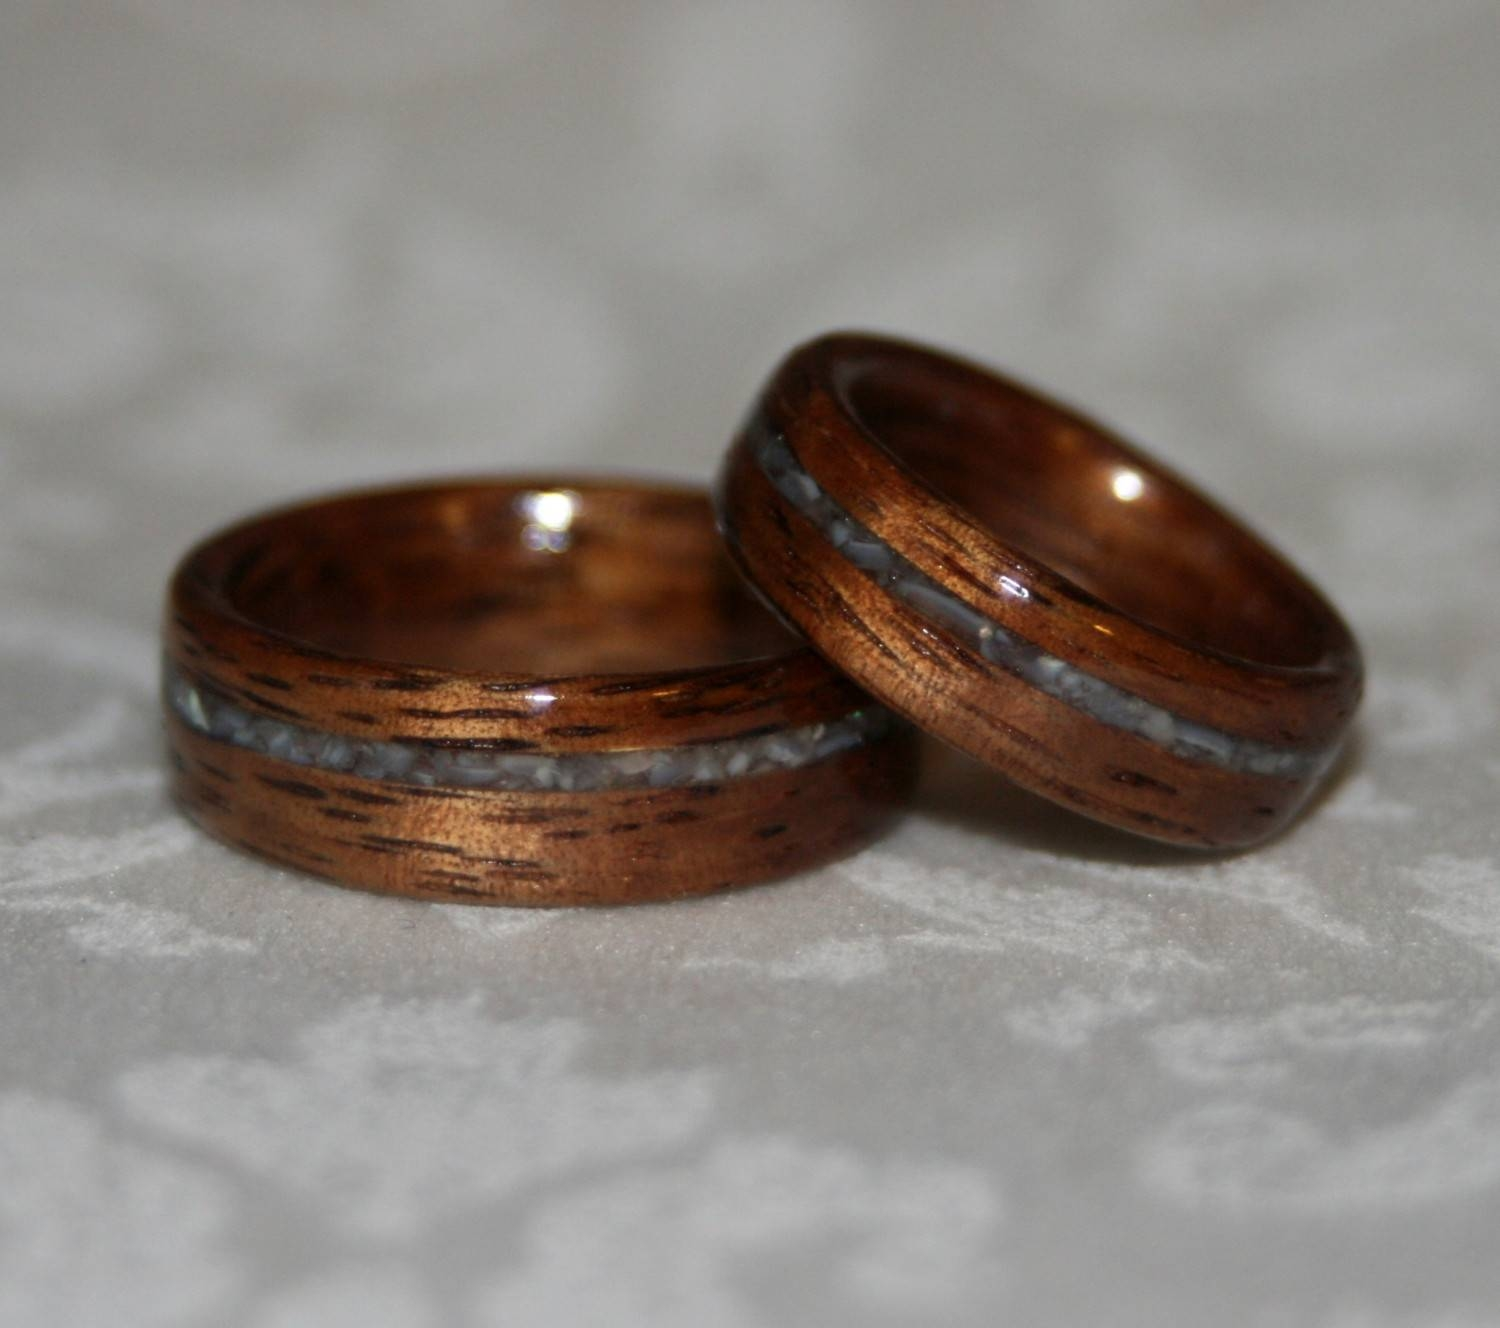 Wooden Wedding Rings — Criolla Brithday & Wedding With Men's Wedding Bands Wood Inlay (View 15 of 15)